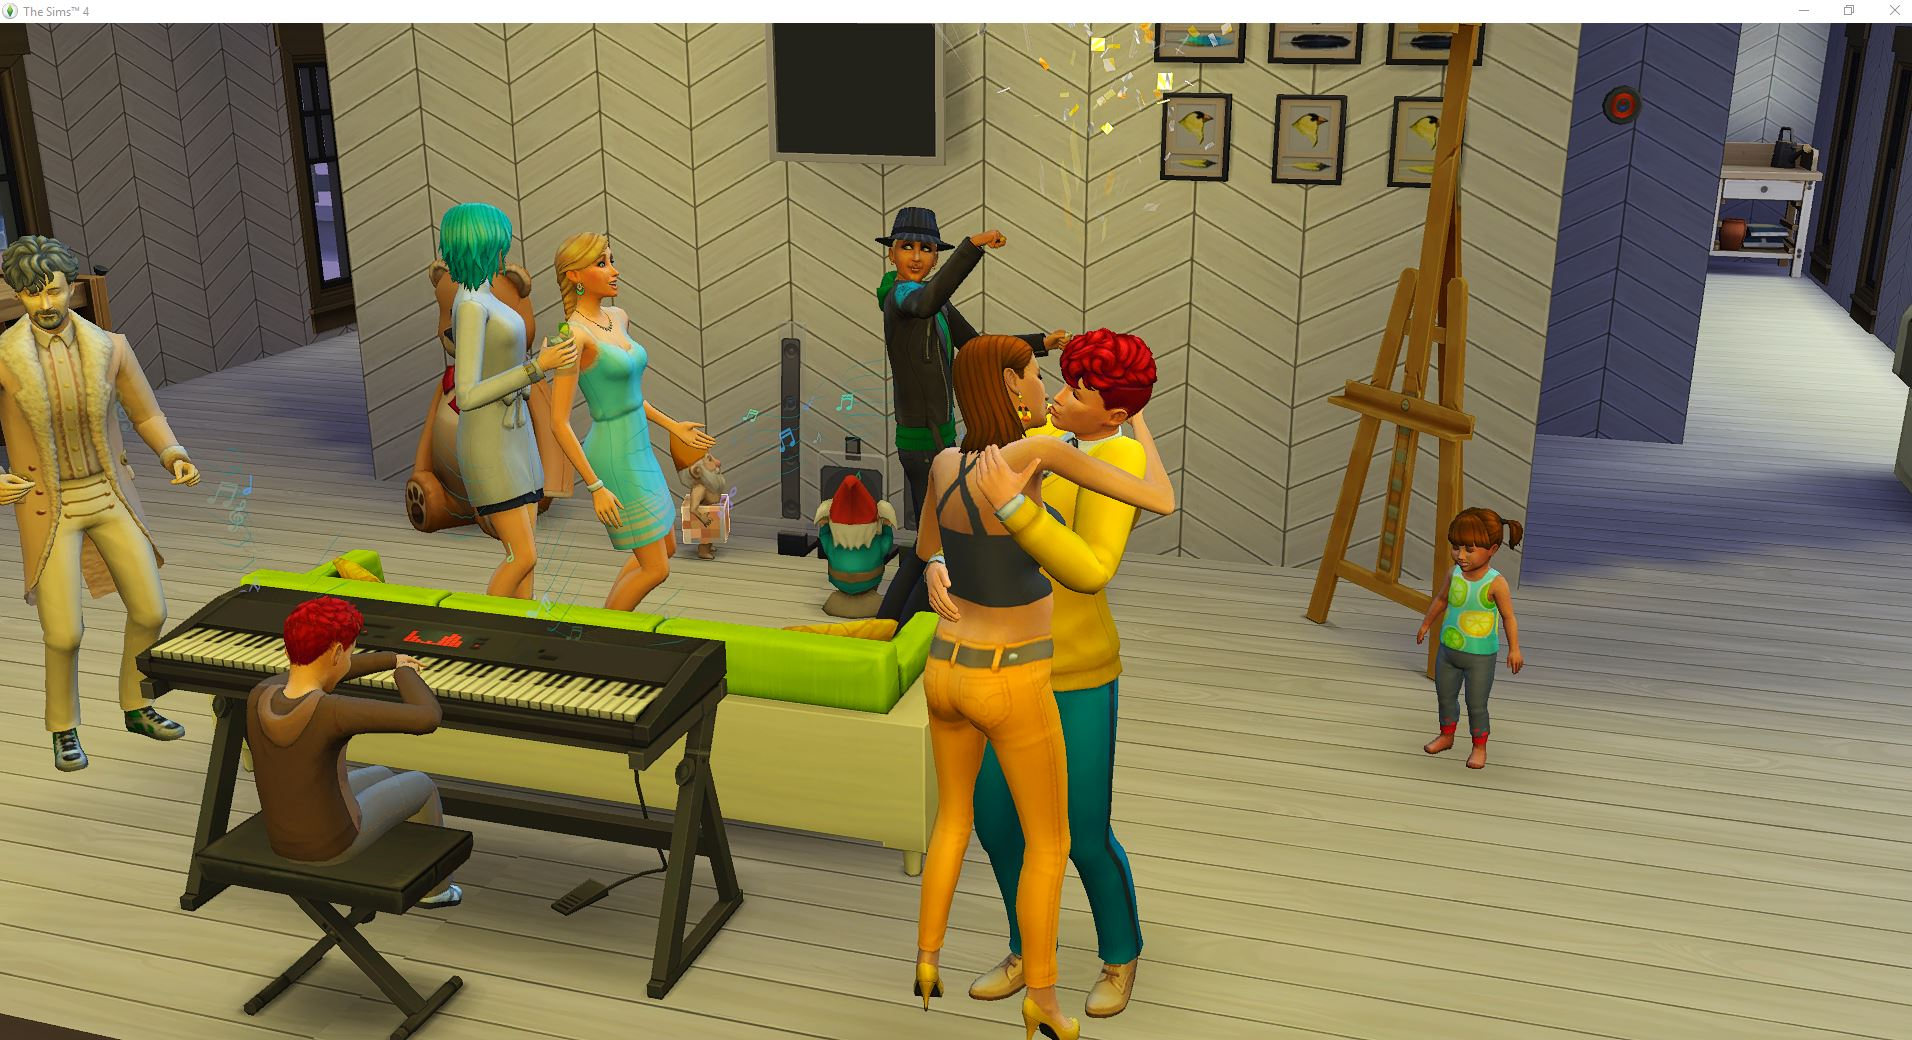 2019-01-06 09_02_20-The Sims™ 4